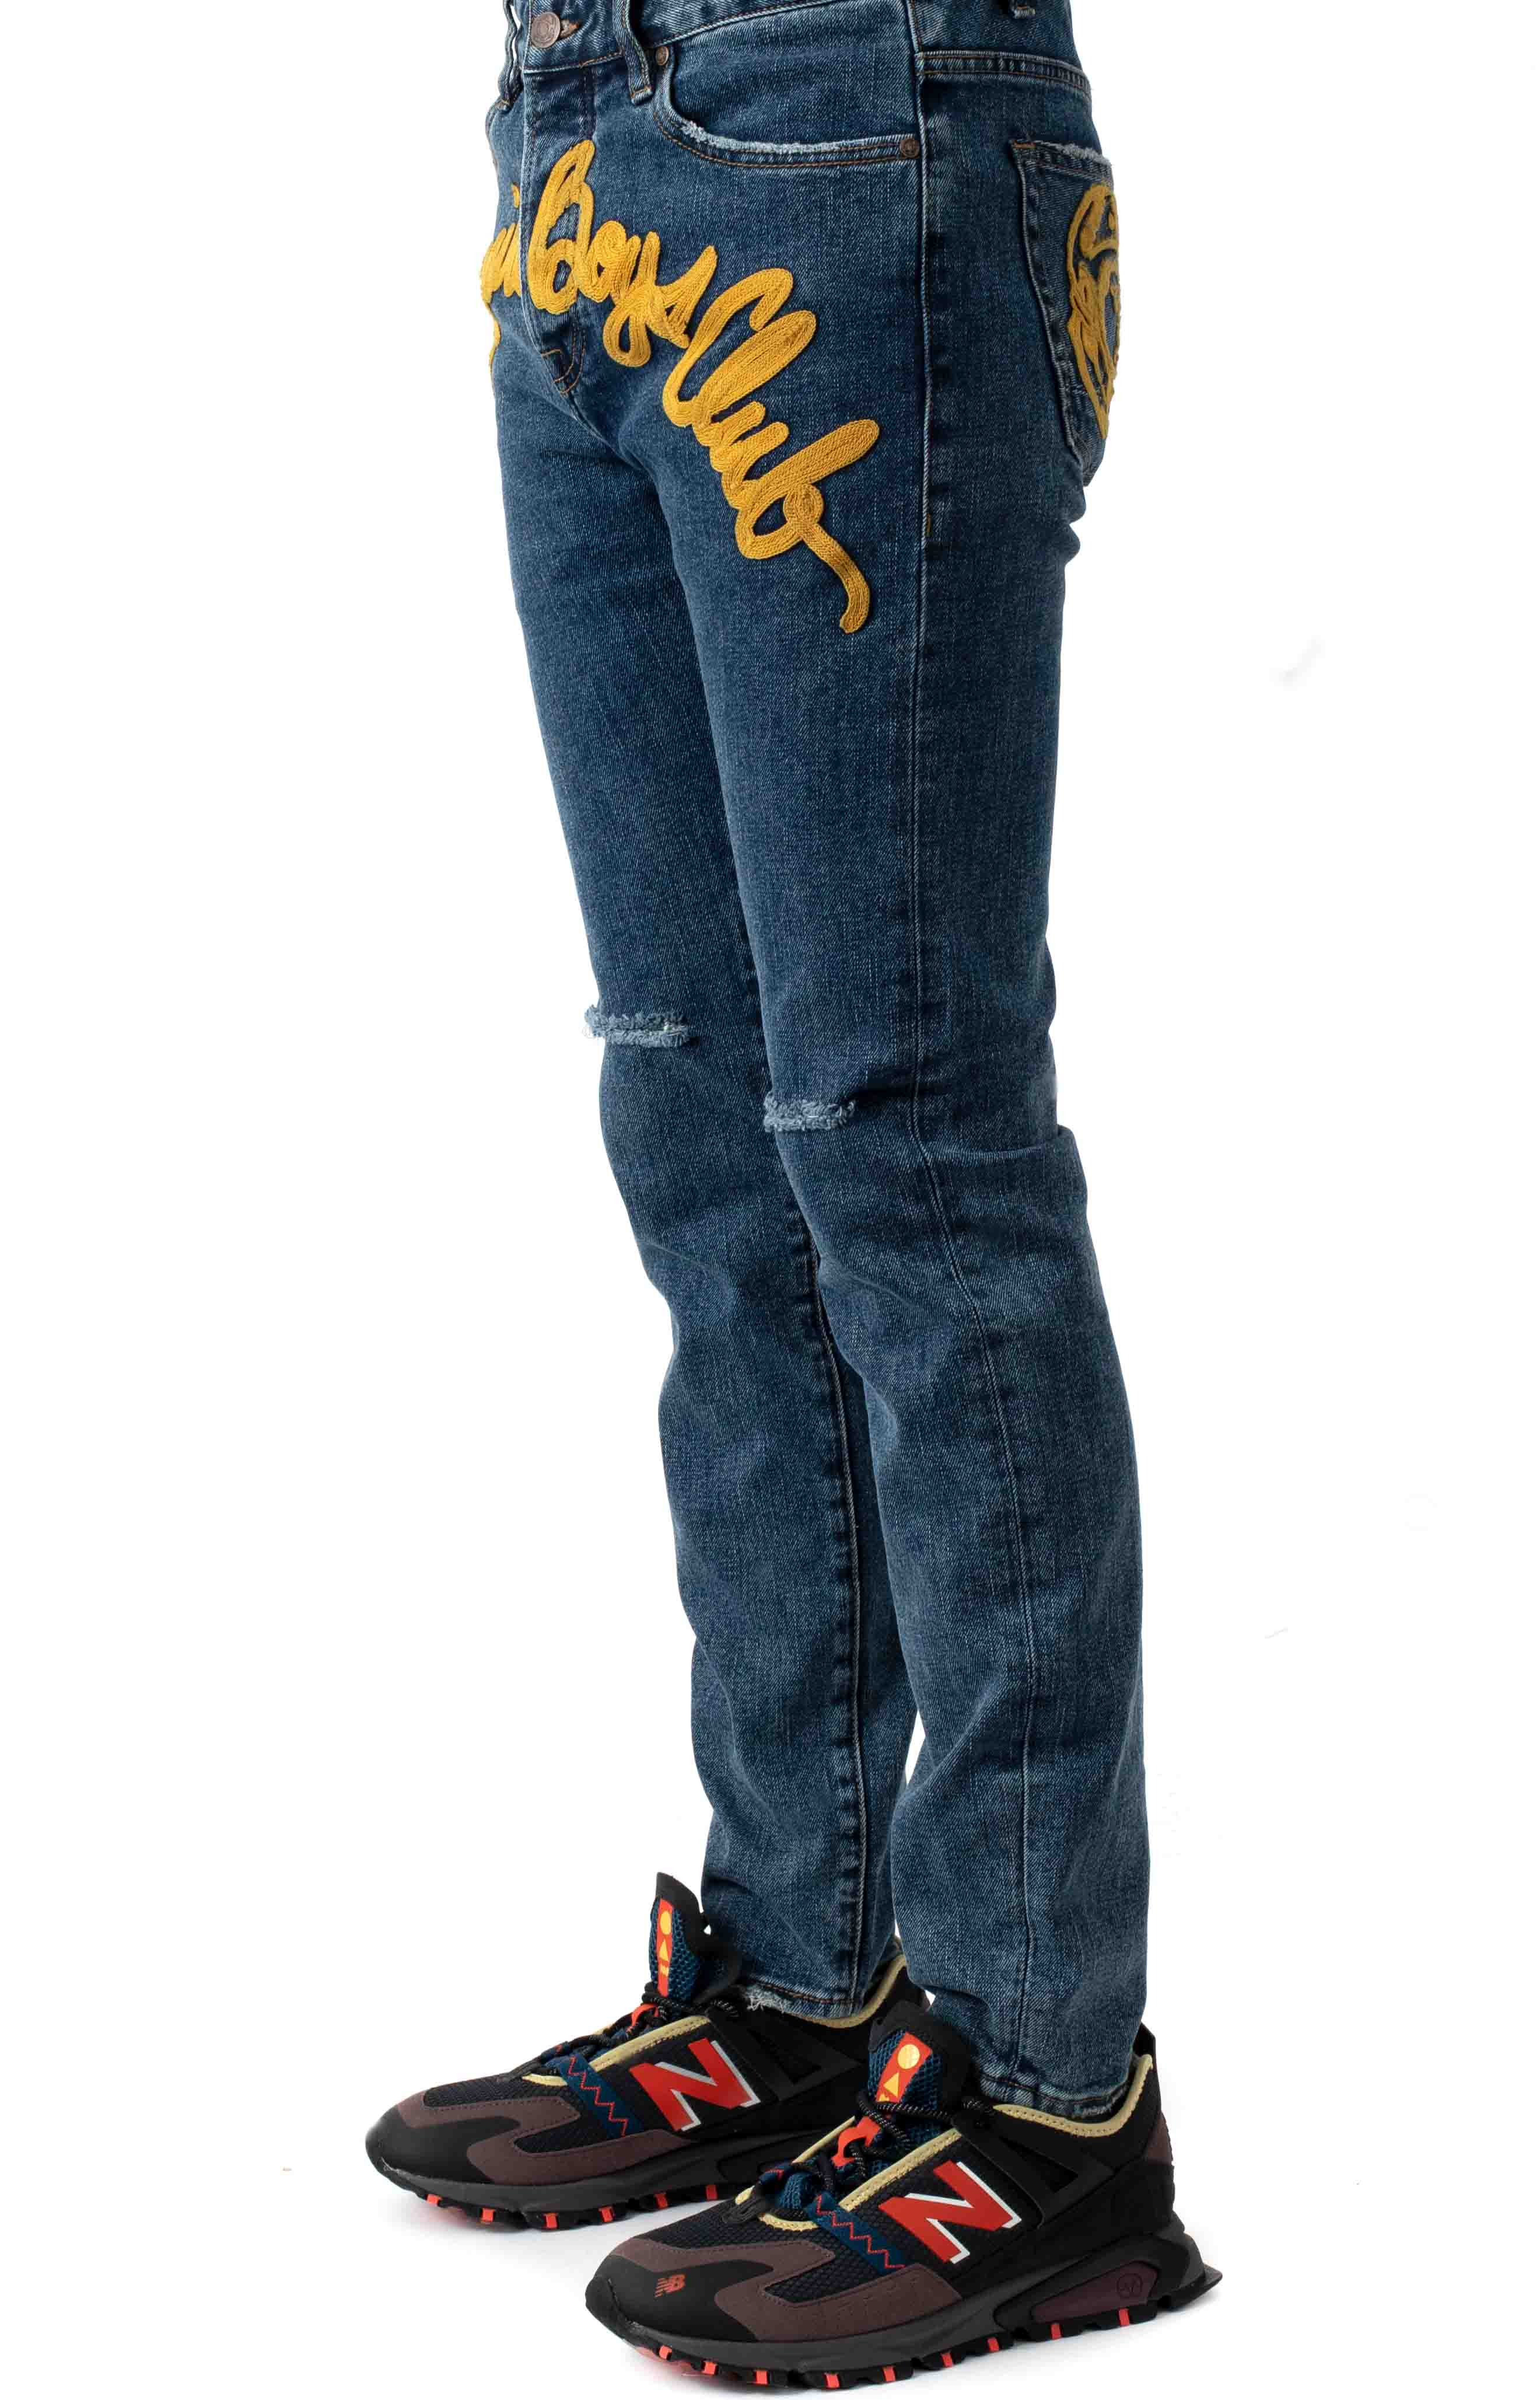 BB Orion Jeans - Solar Flare  2